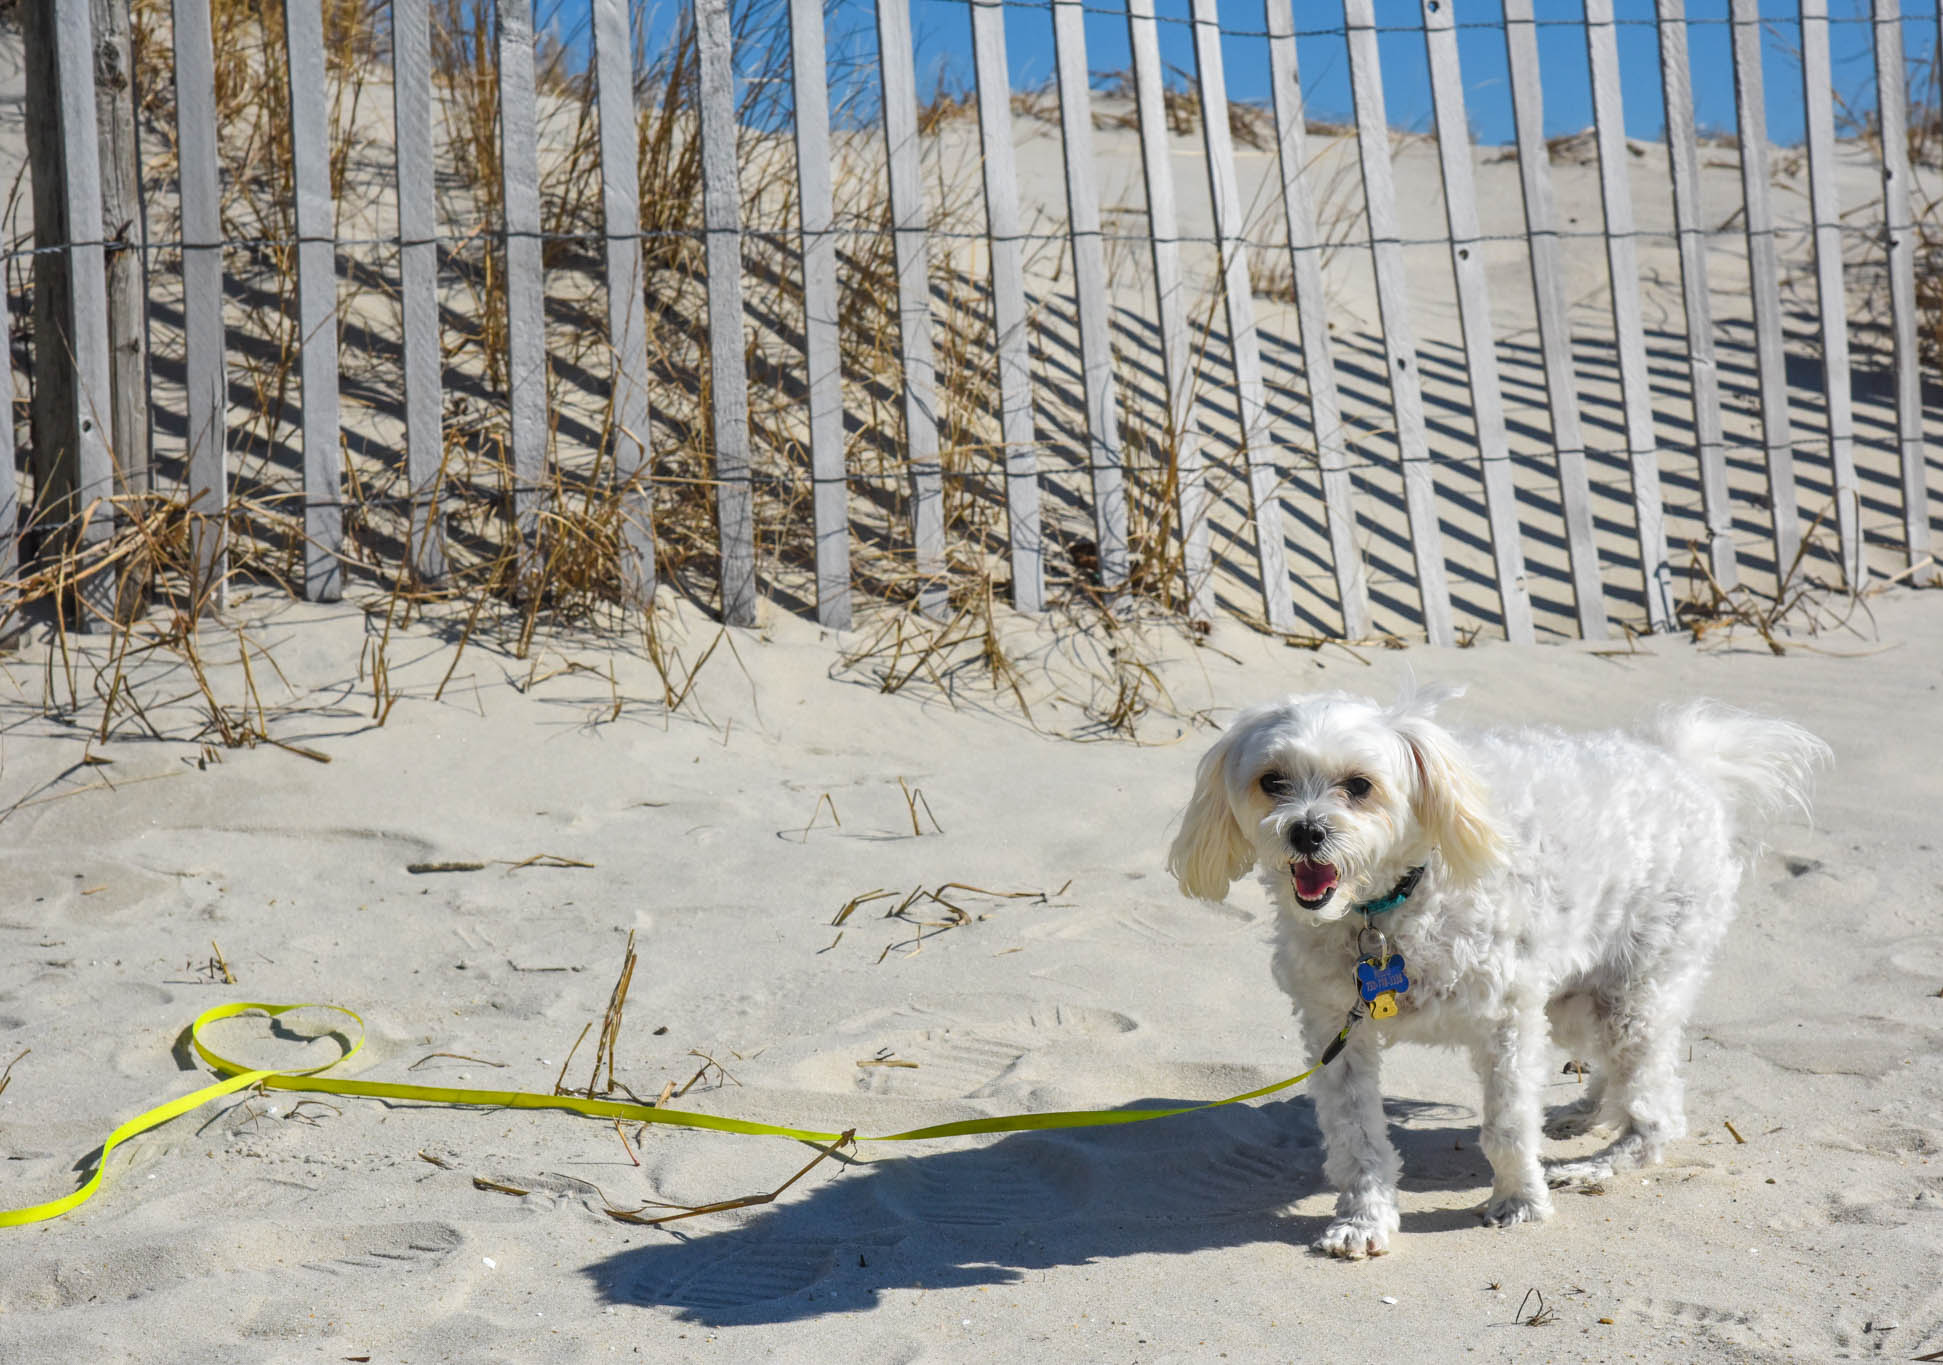 a dog on the beach his name is Milo